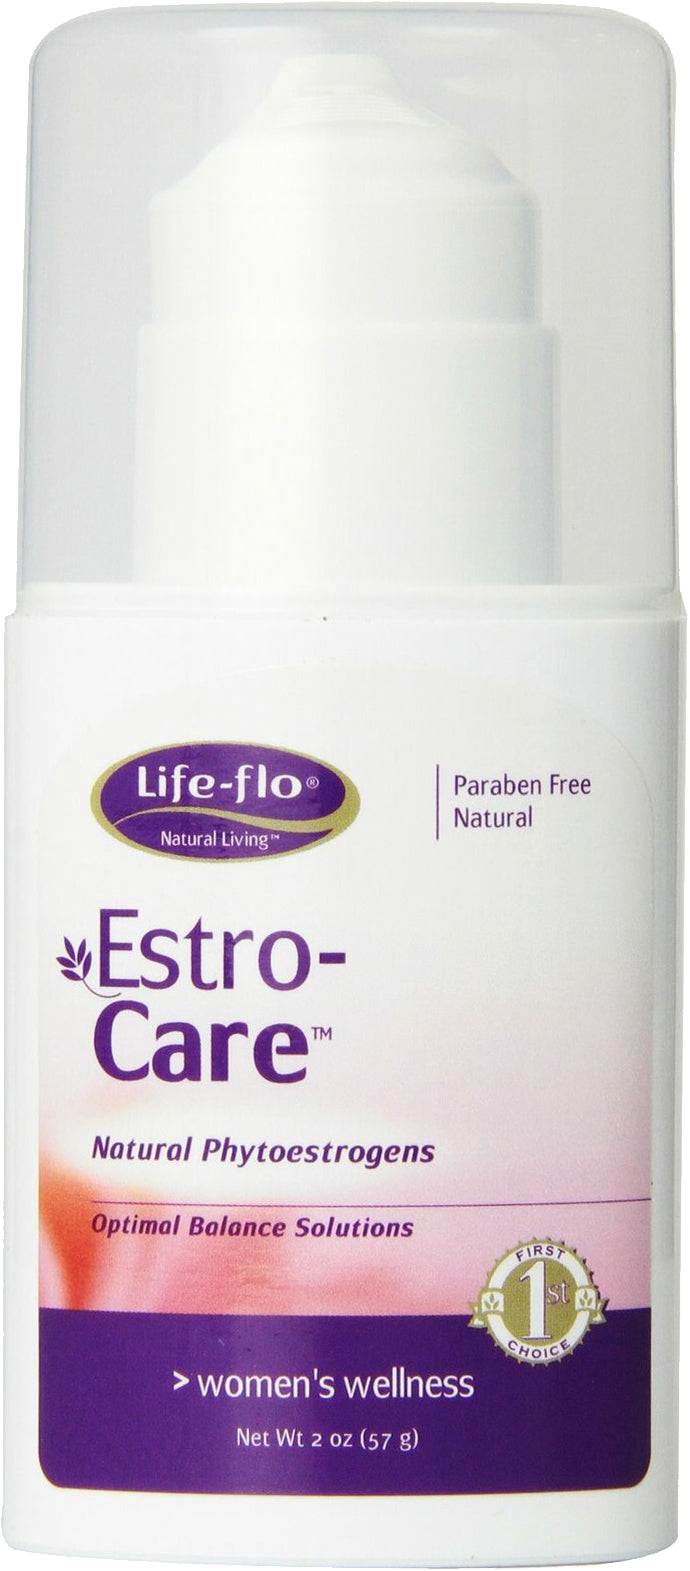 Estro-Care™ with Natural Phytoestrogens, 2 Oz (57 g) Cream